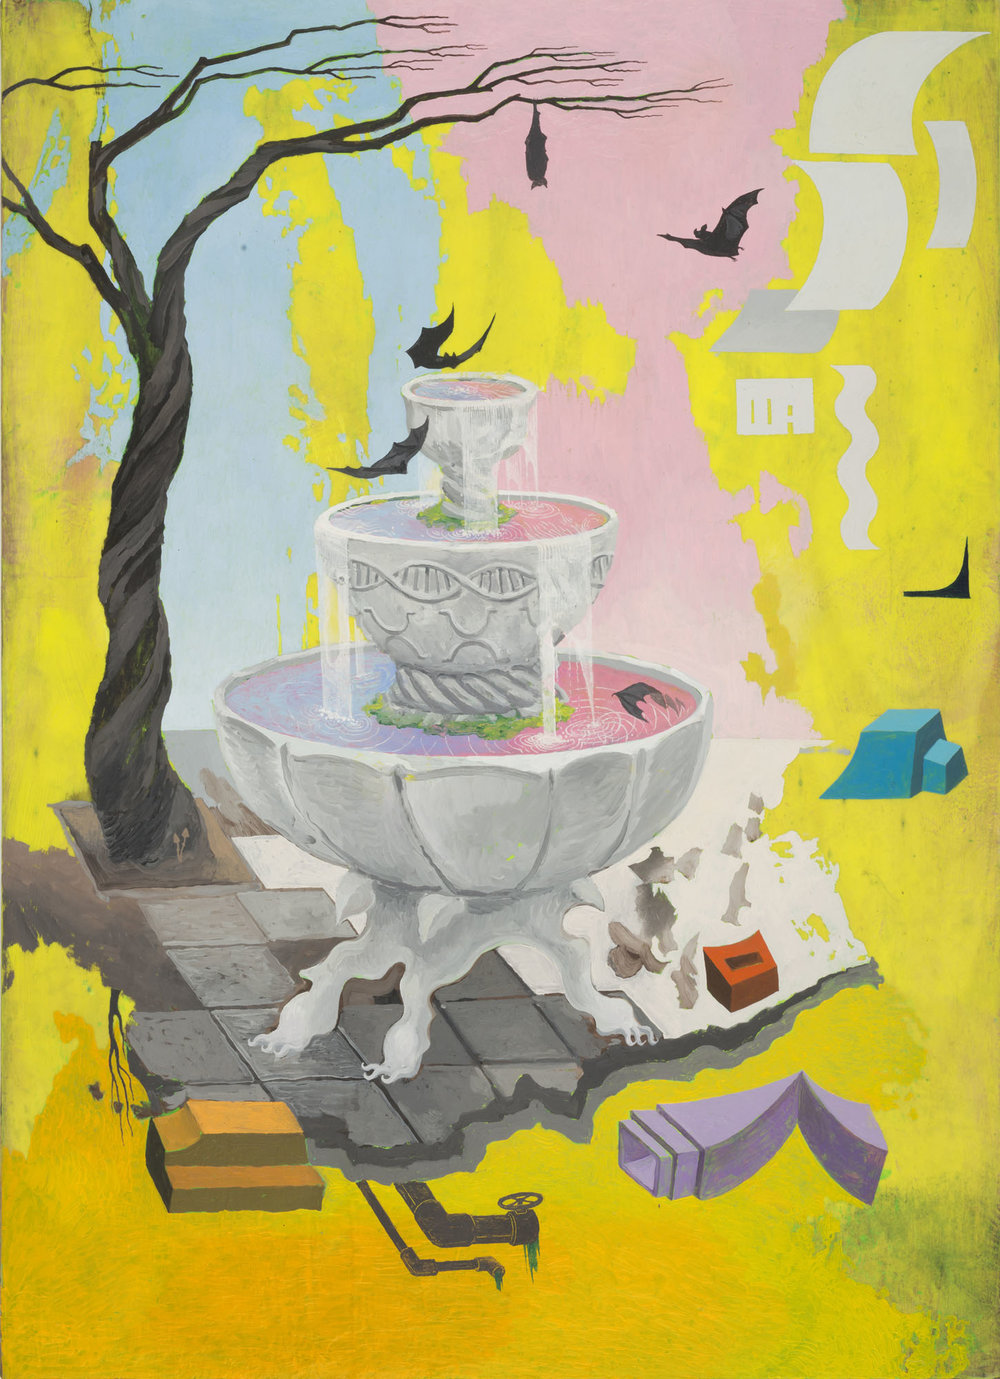 Mi Kafchin   The Fountain with Bats , 2017  Oil on wood  108 x 78 cm  42.5 x 31 inches